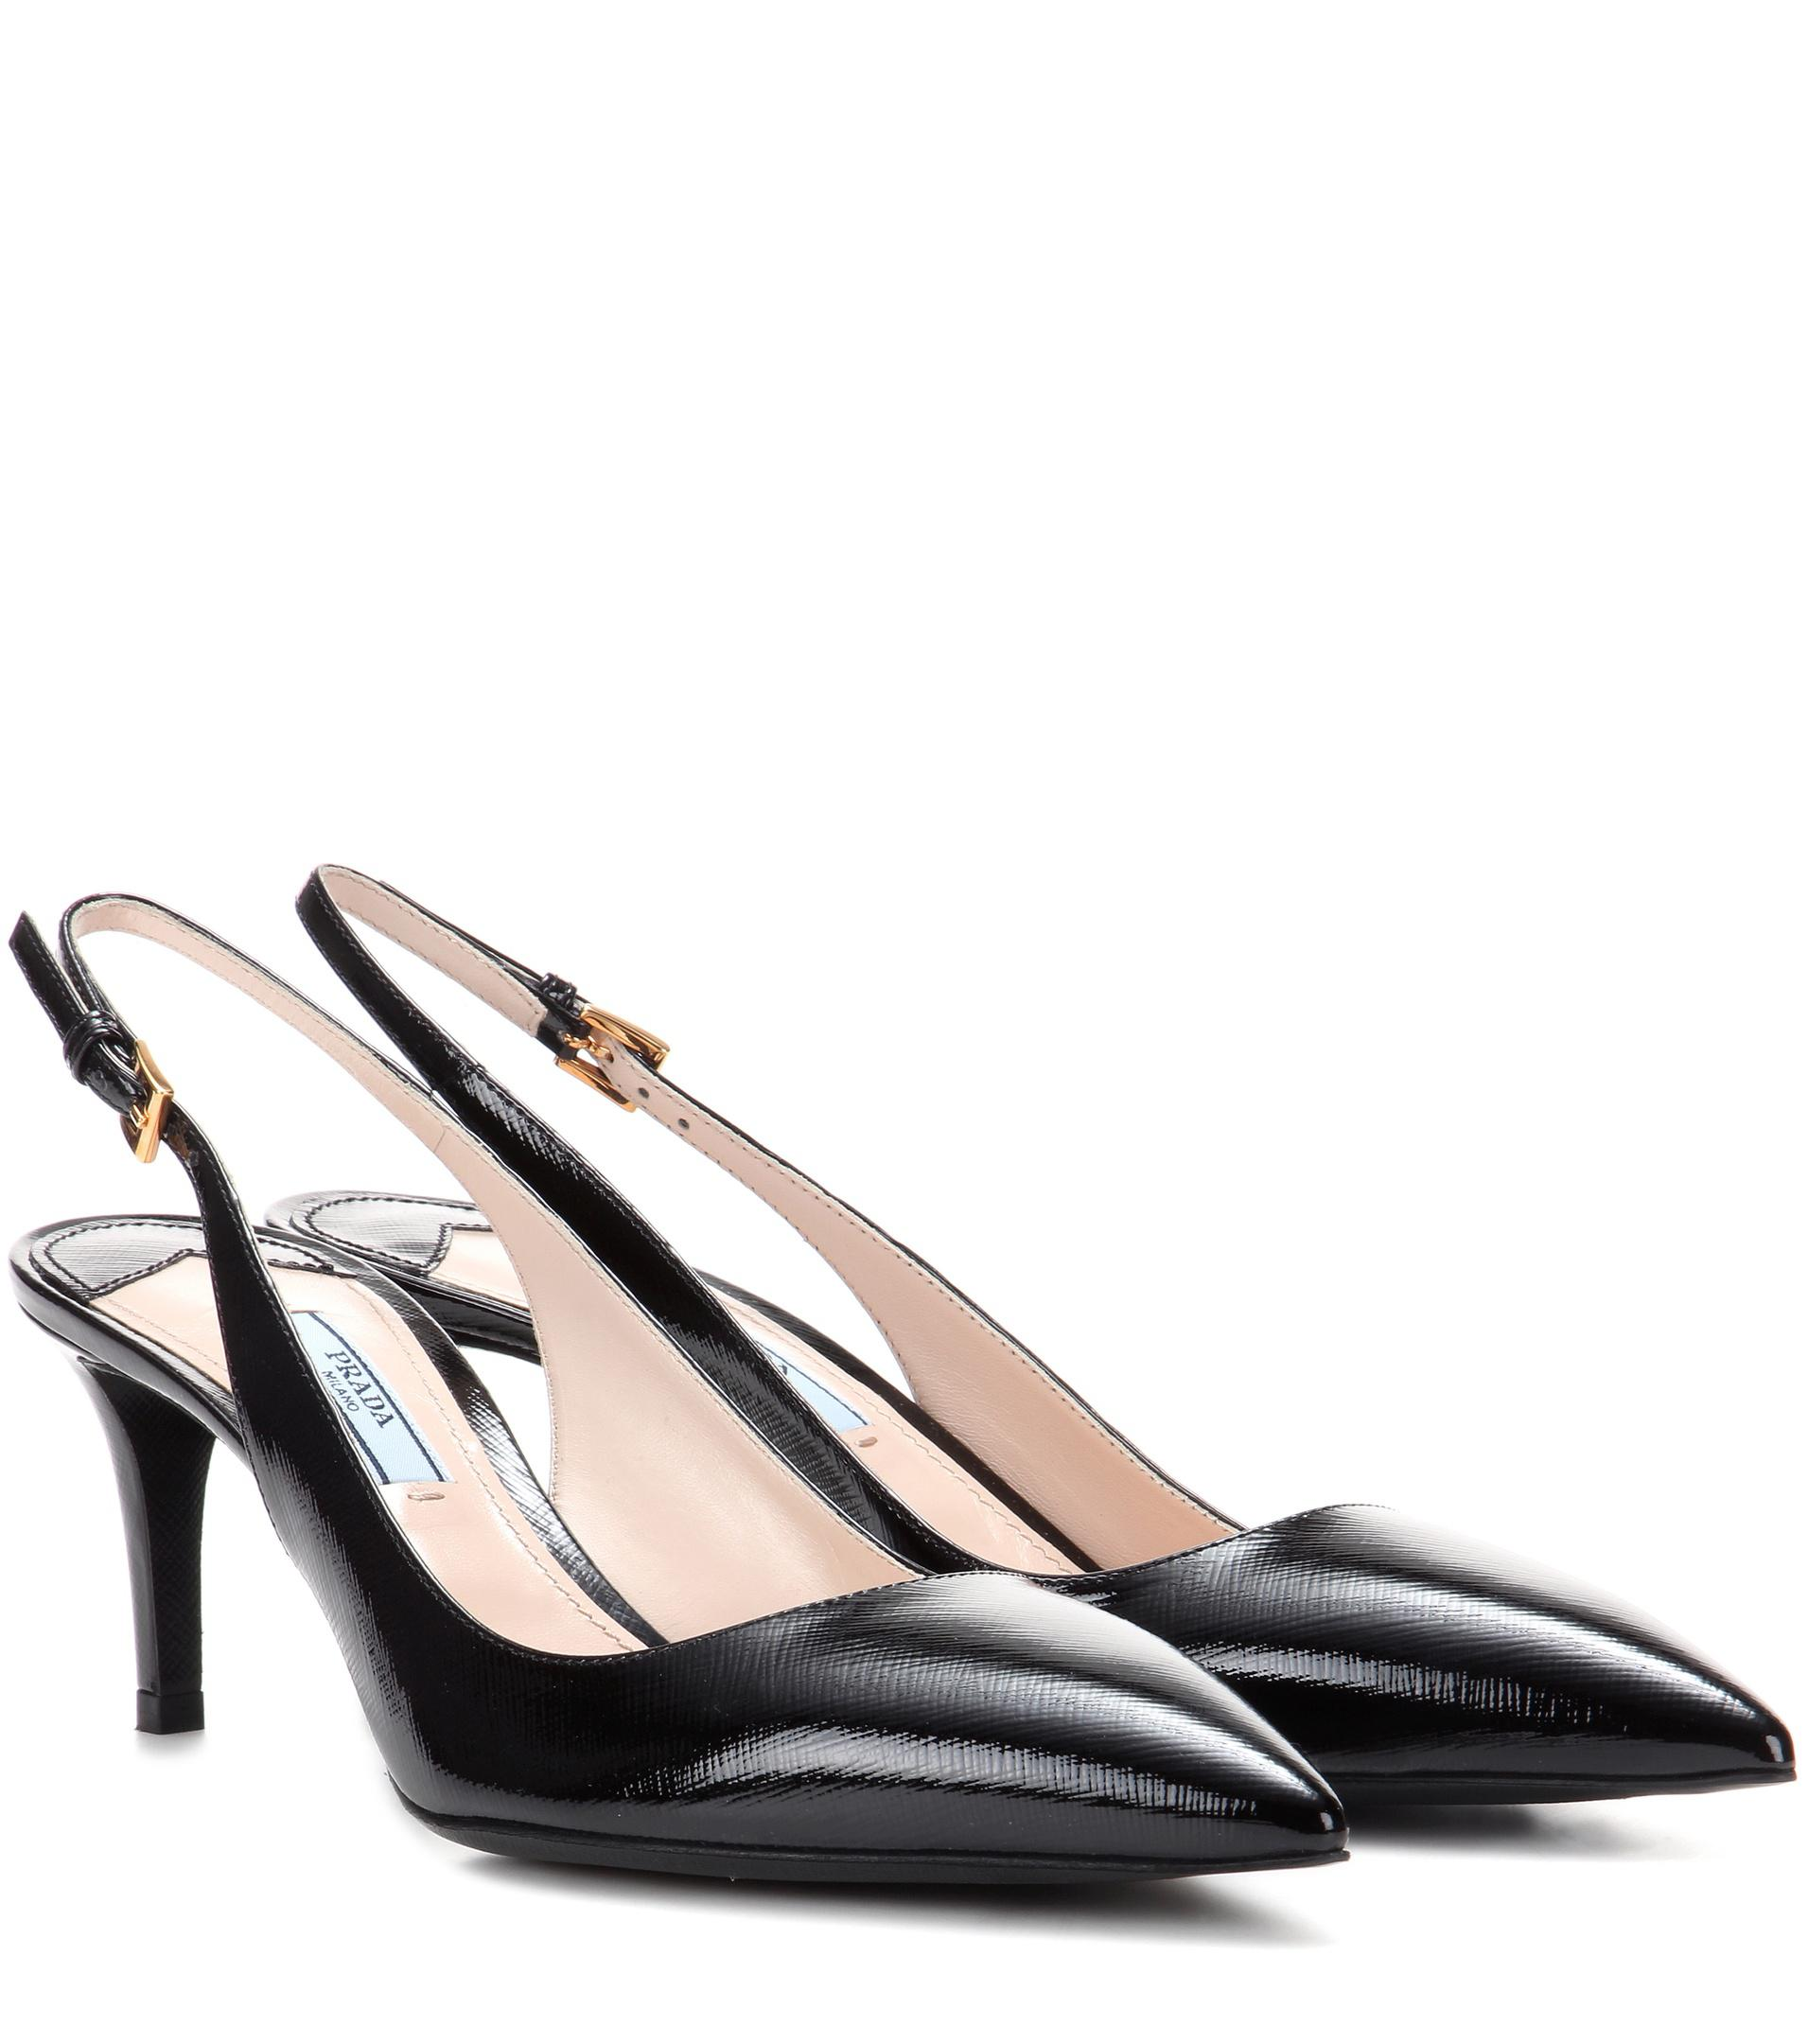 cheap for sale classic sale online Prada Leather slingback pumps low shipping fee sale online LTSUn